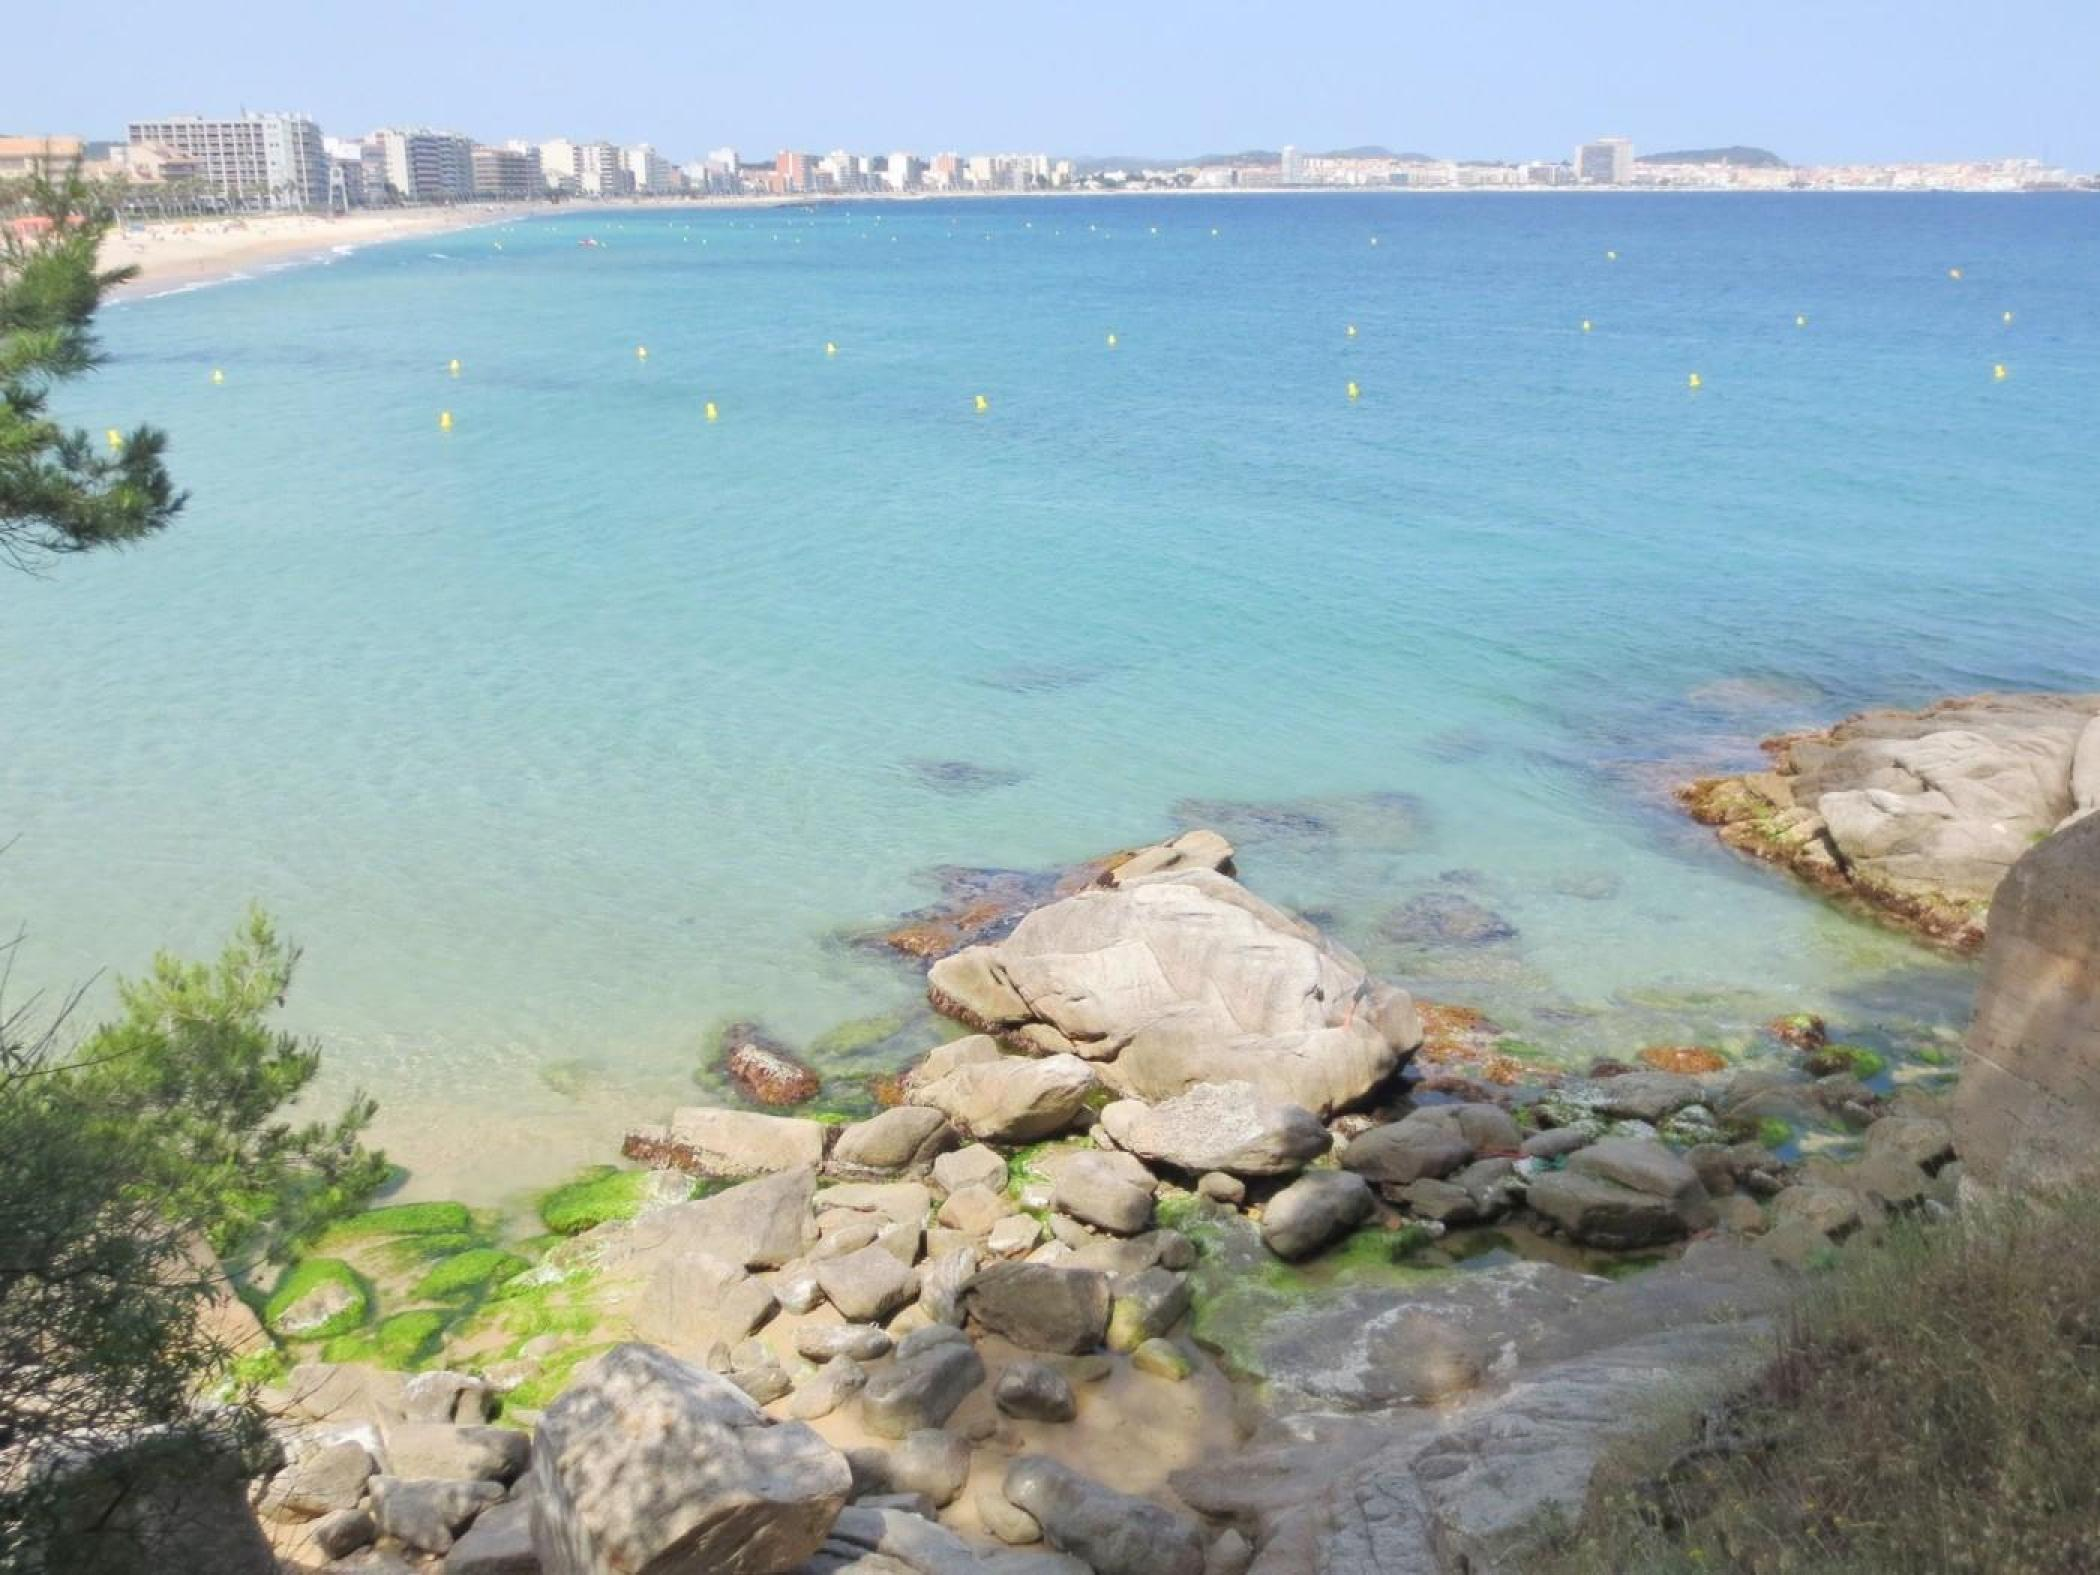 Rent Apartment with Swimming pool in Sant Antoni de Calonge - Complexe Canigó amb piscina i 1º linea de mar - 23